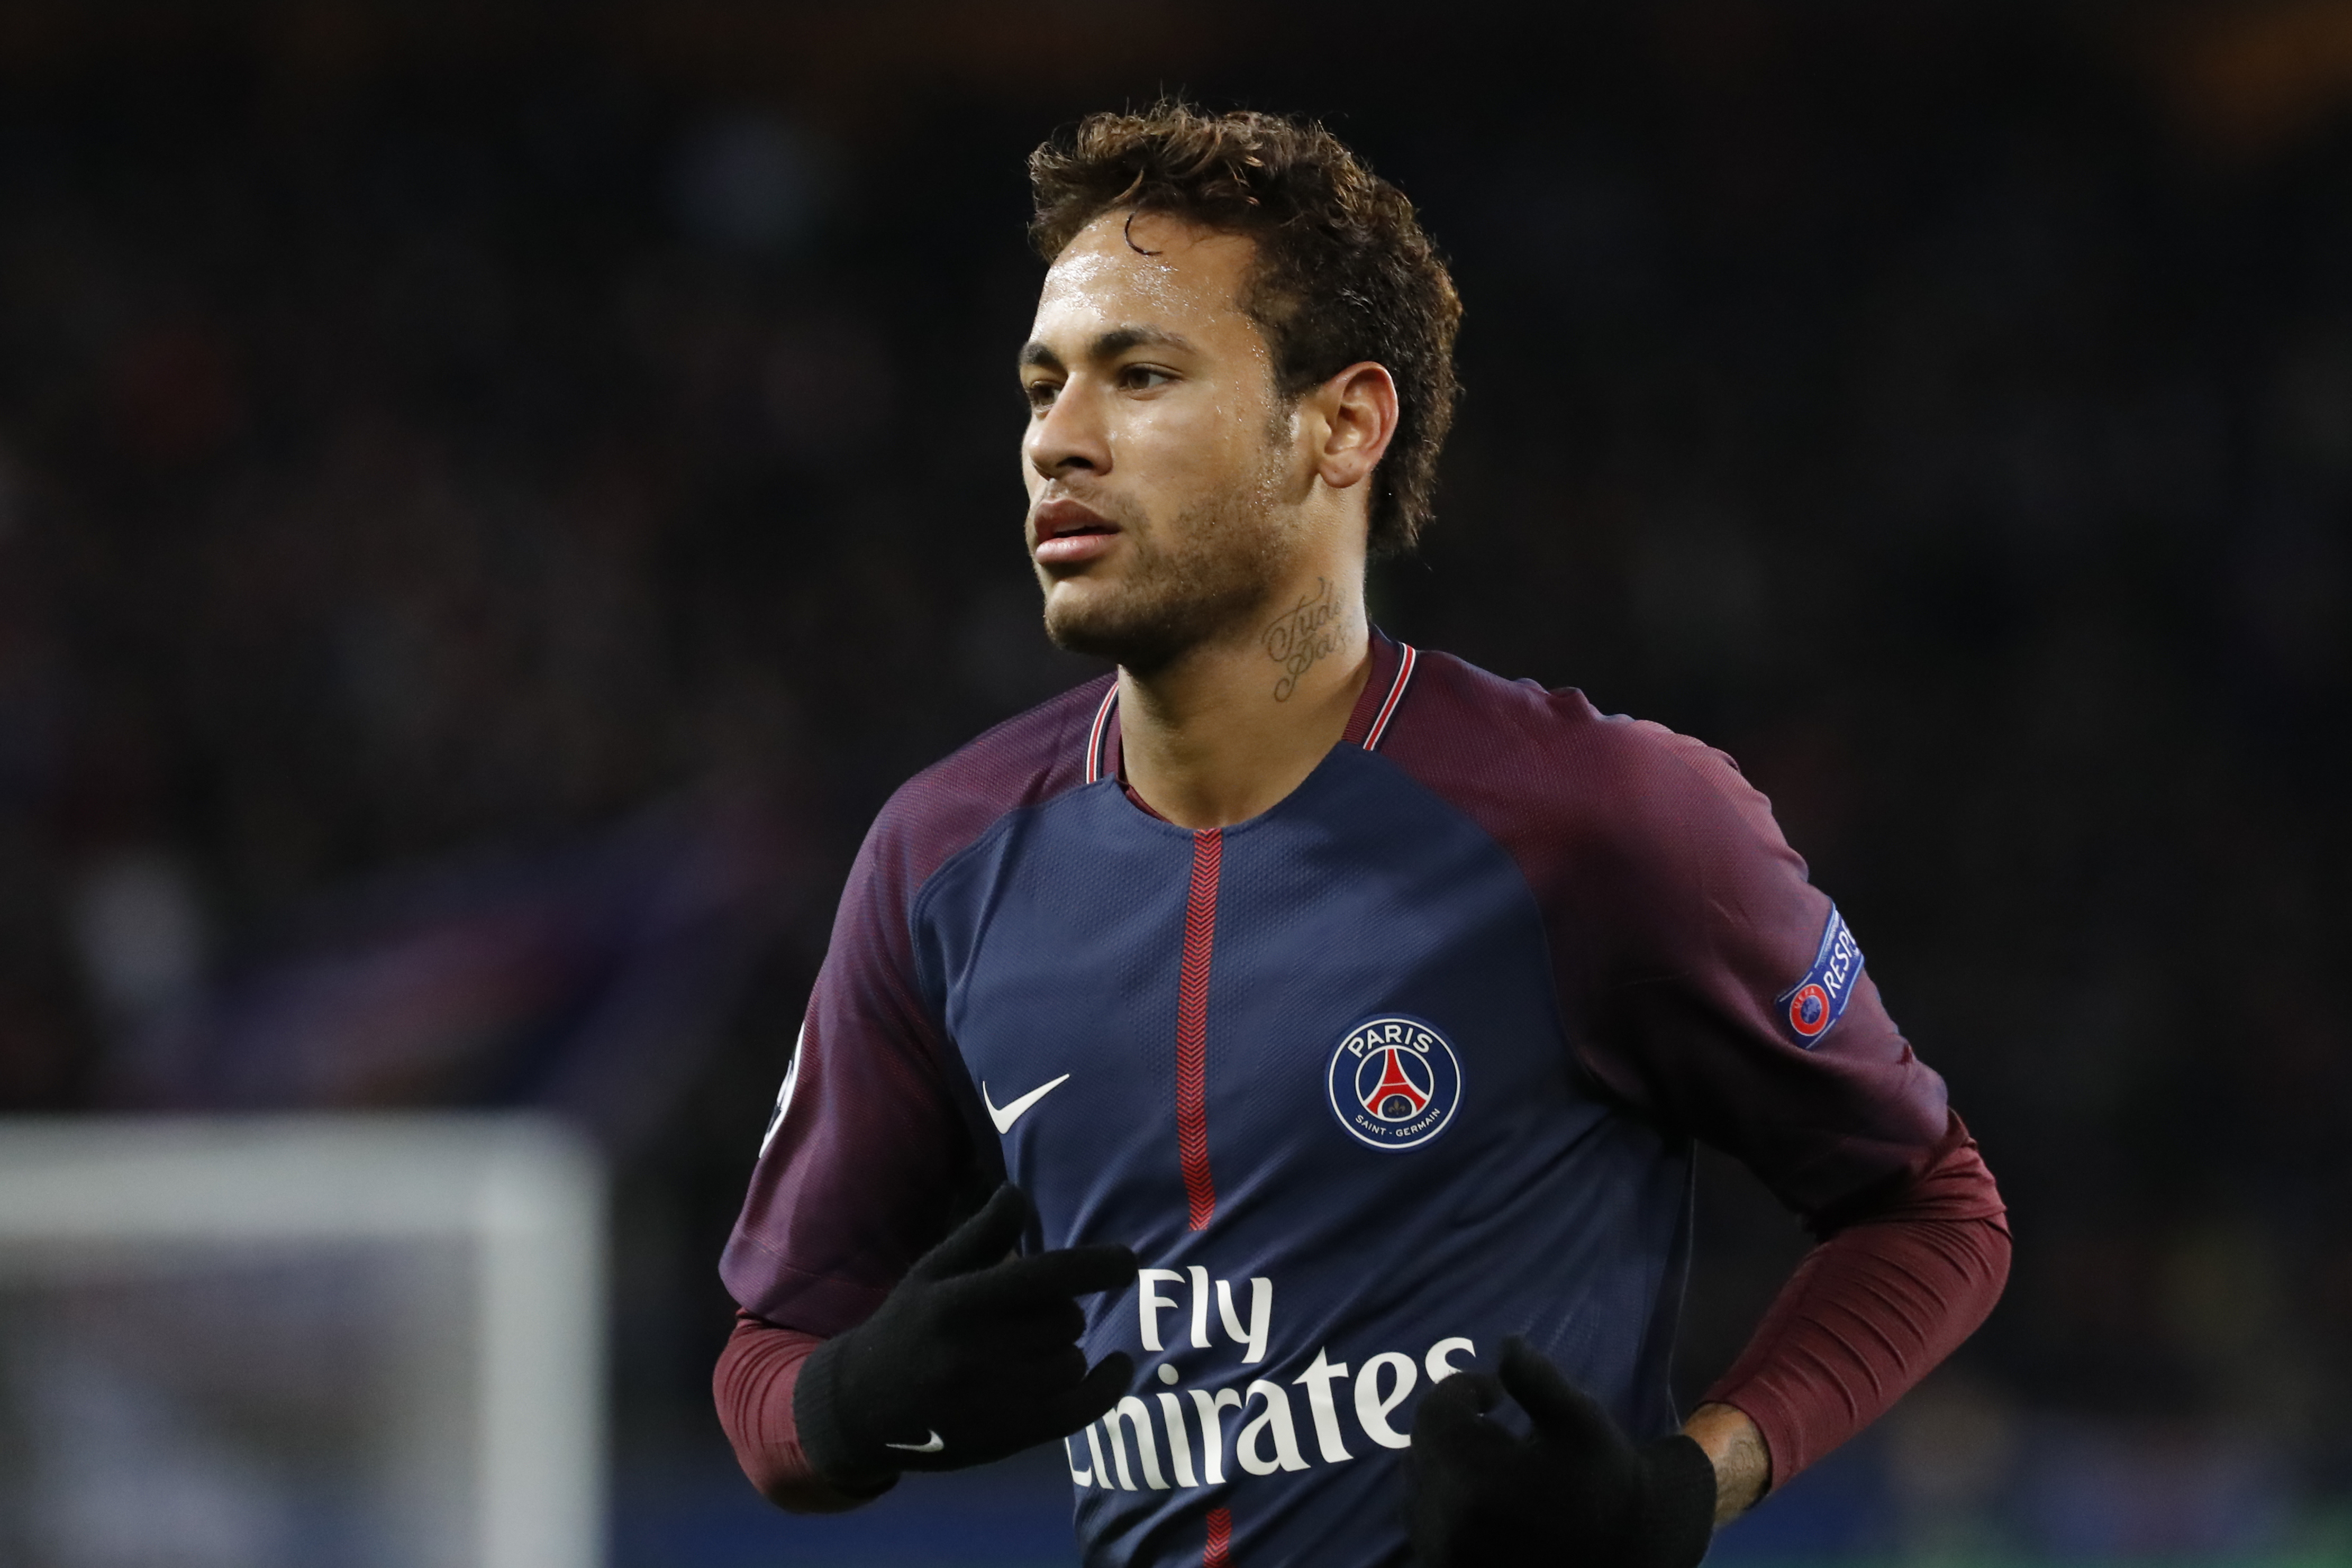 Perez tempts Neymar with Ballon d'Or